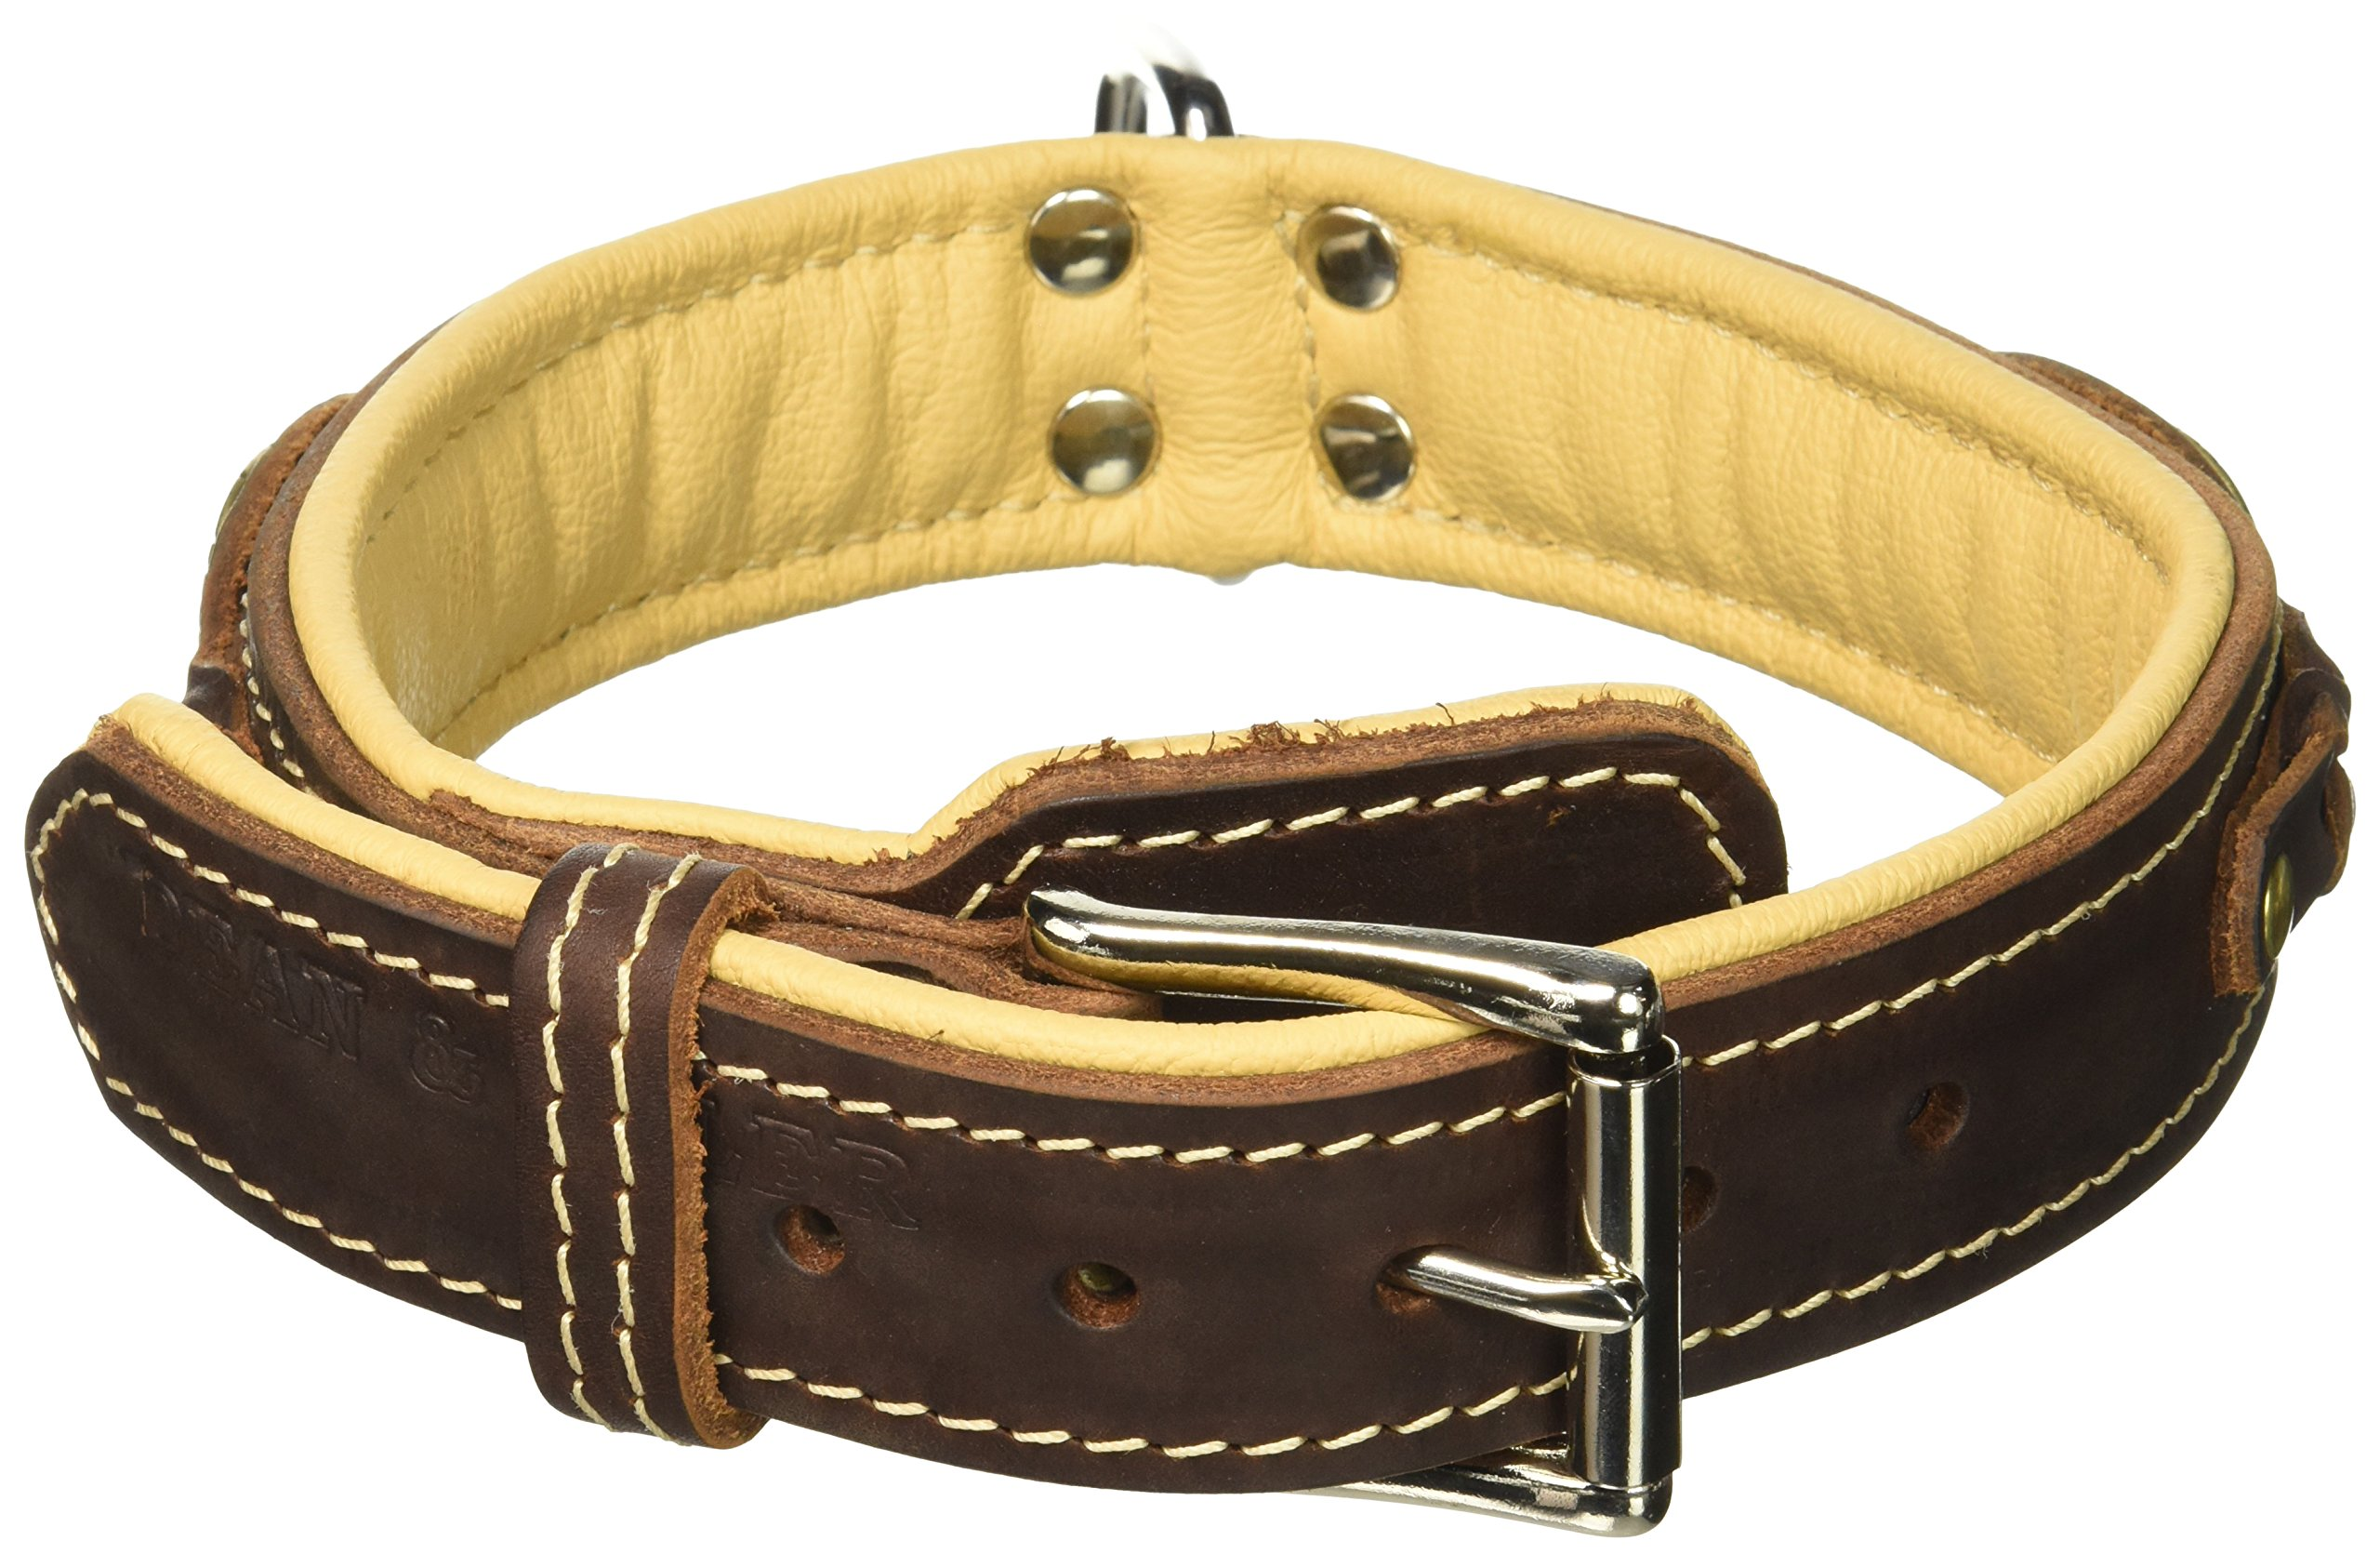 Dean & Tyler Dean's Legend Dog Collar with Brown Padding and Chrome Plated Steel Hardware, 20 by 1-1/2-Inch, Brown by Dean & Tyler (Image #1)